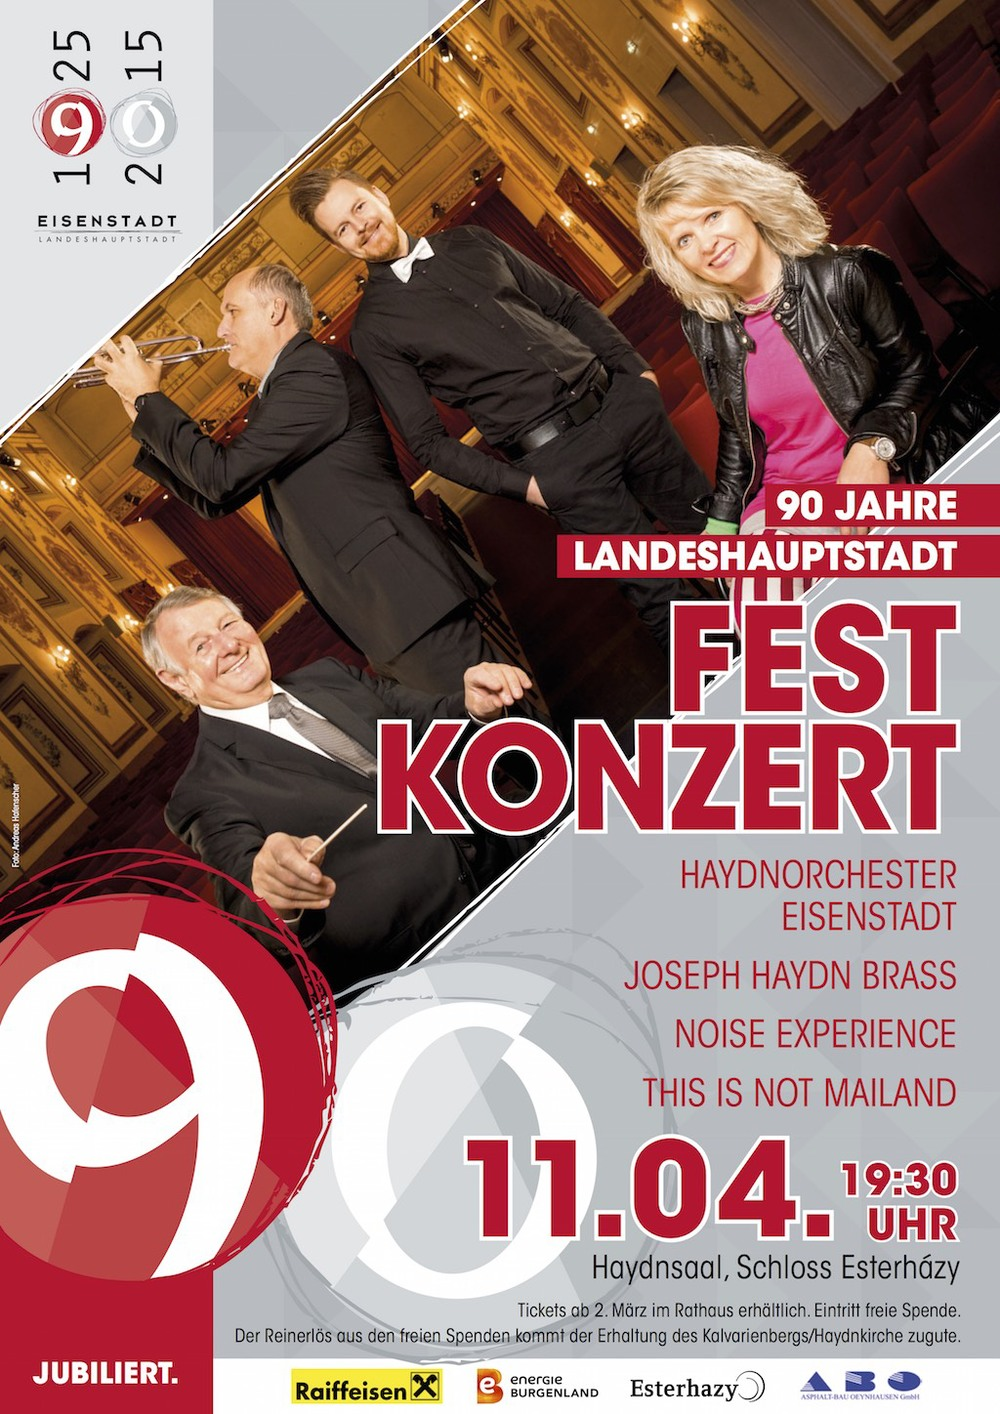 90J_Plakat_Festkonzert_SCREEN_Square.jpg